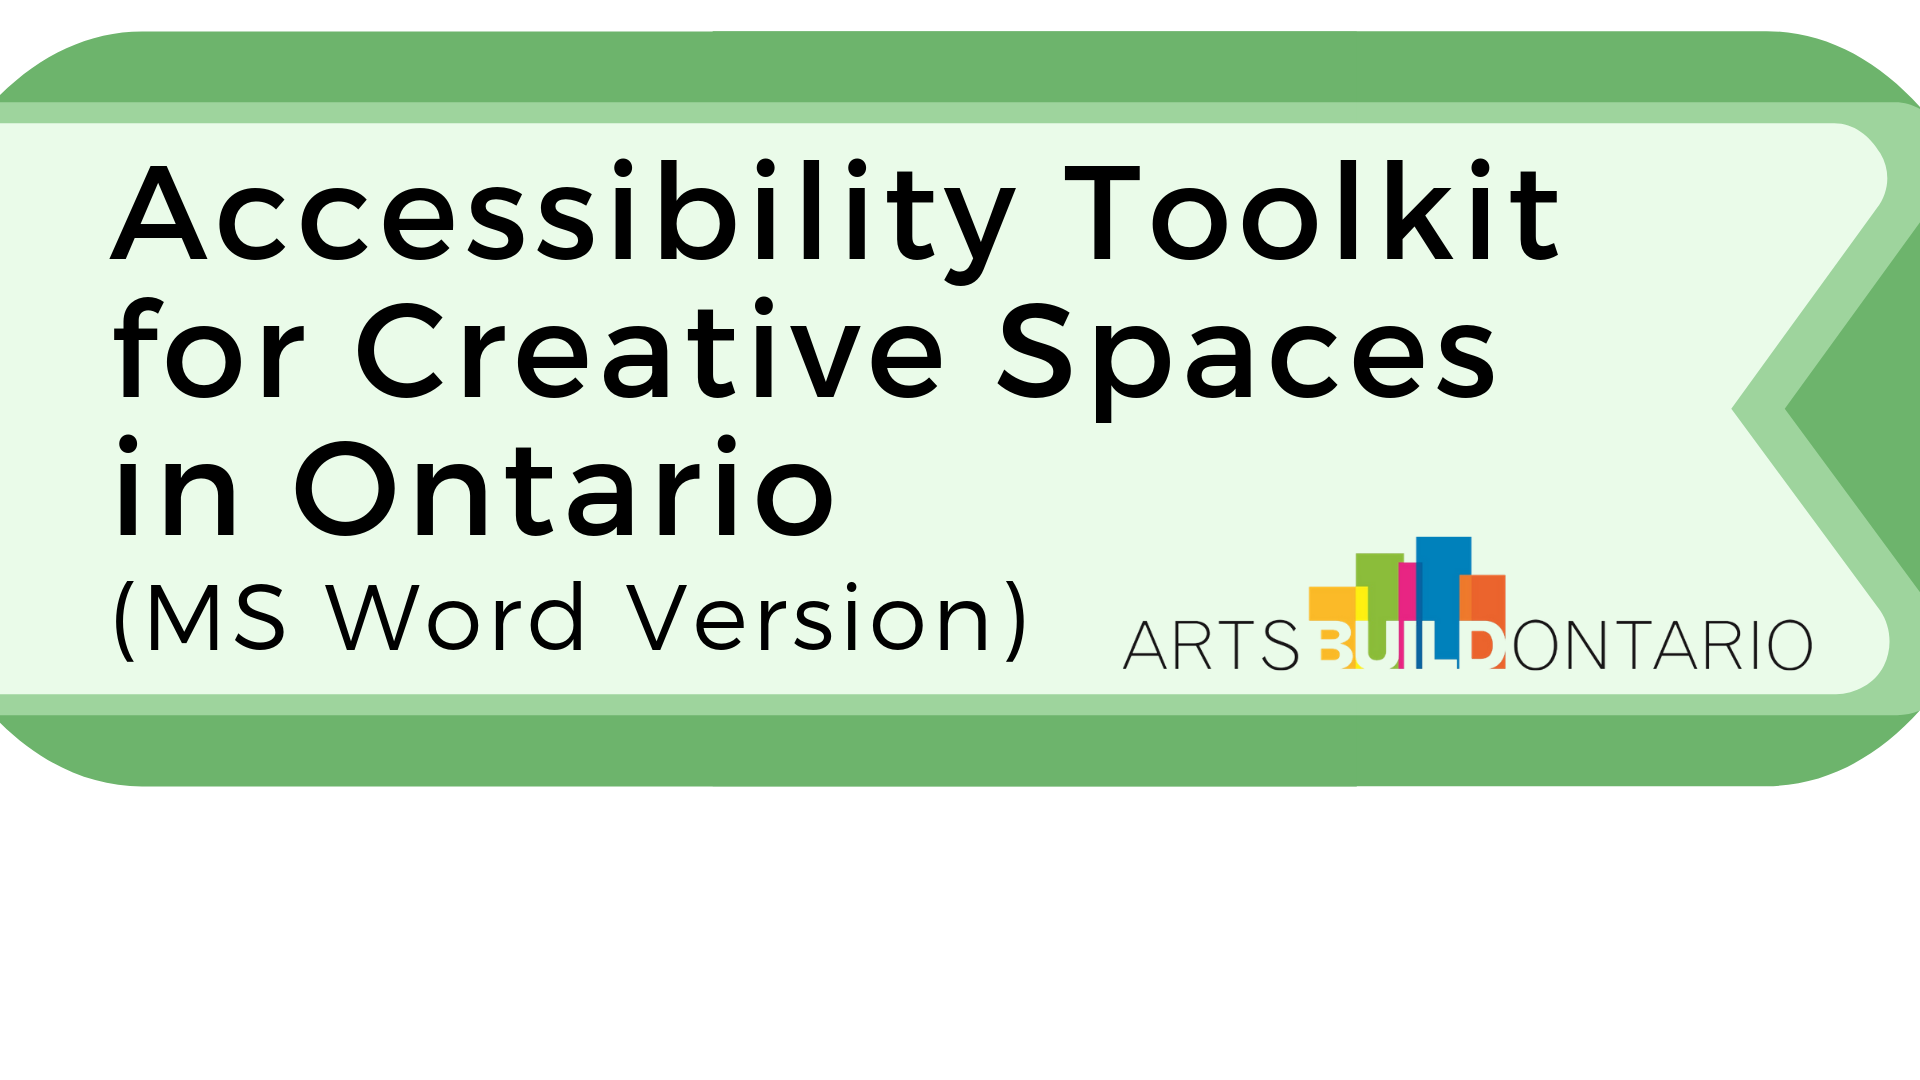 Button to access Microsoft Word version of Accessibility Toolkit for Creative Spaces in Ontario